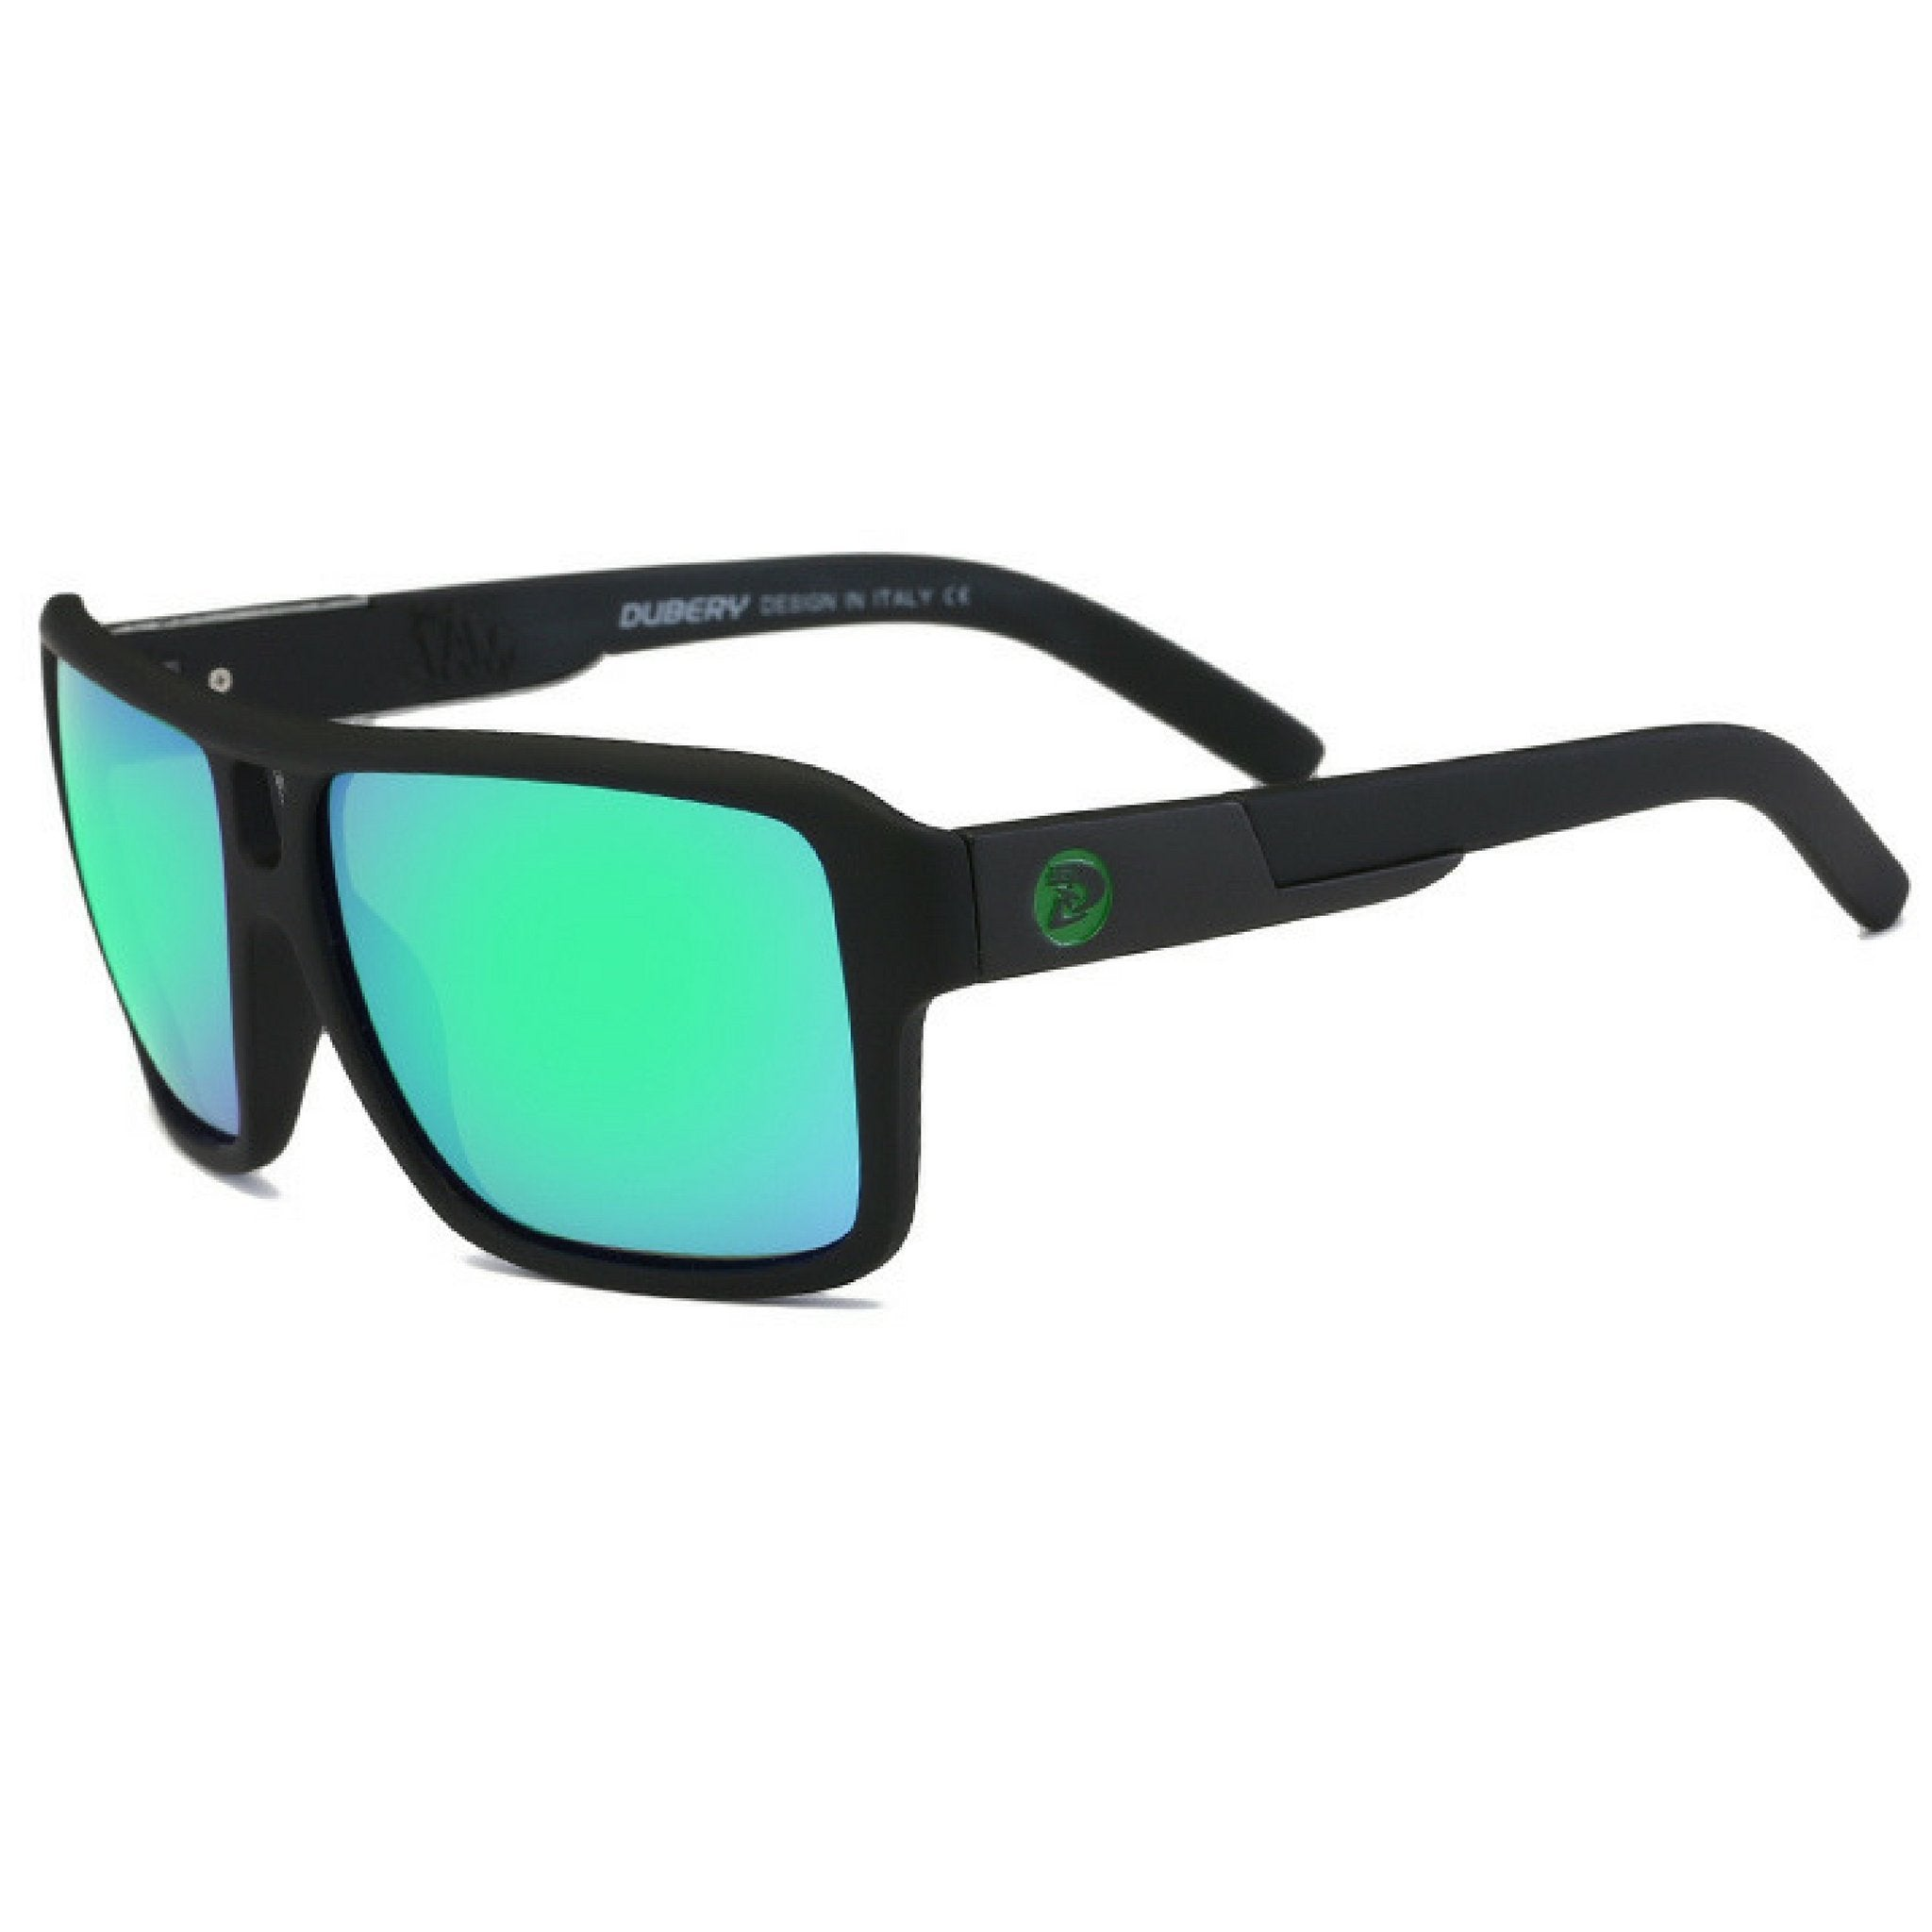 8167820637 Grizzly Fishing Sunglasses Aqua Sea Seeker Fishing Sunglasses